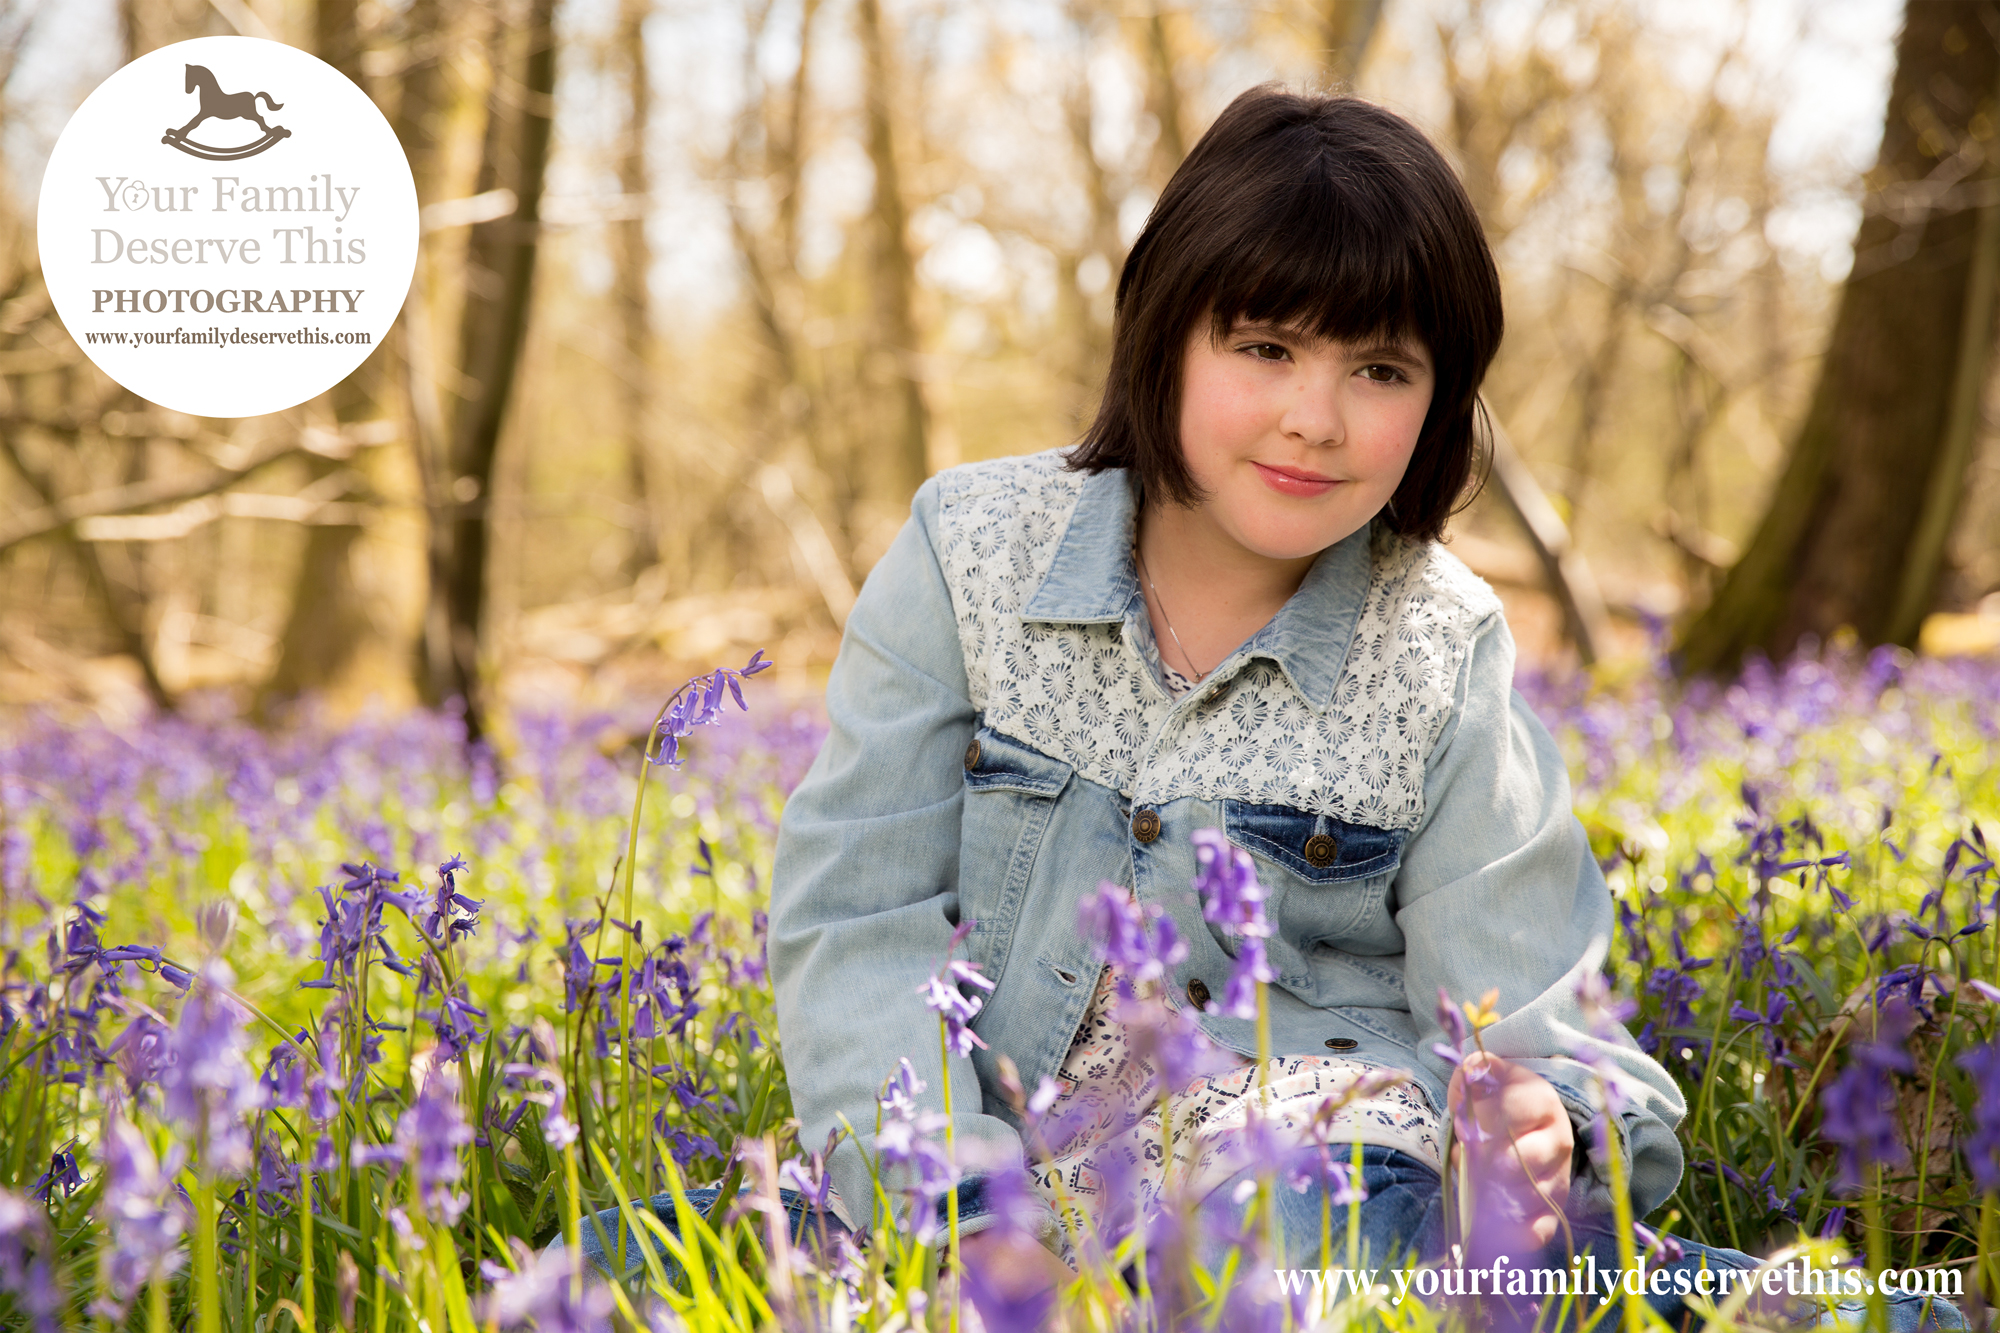 Tween Portraits for girls in the bluebells. Pre-teen photoshoots with  YourFamilyDeserveThis Photography Studio.